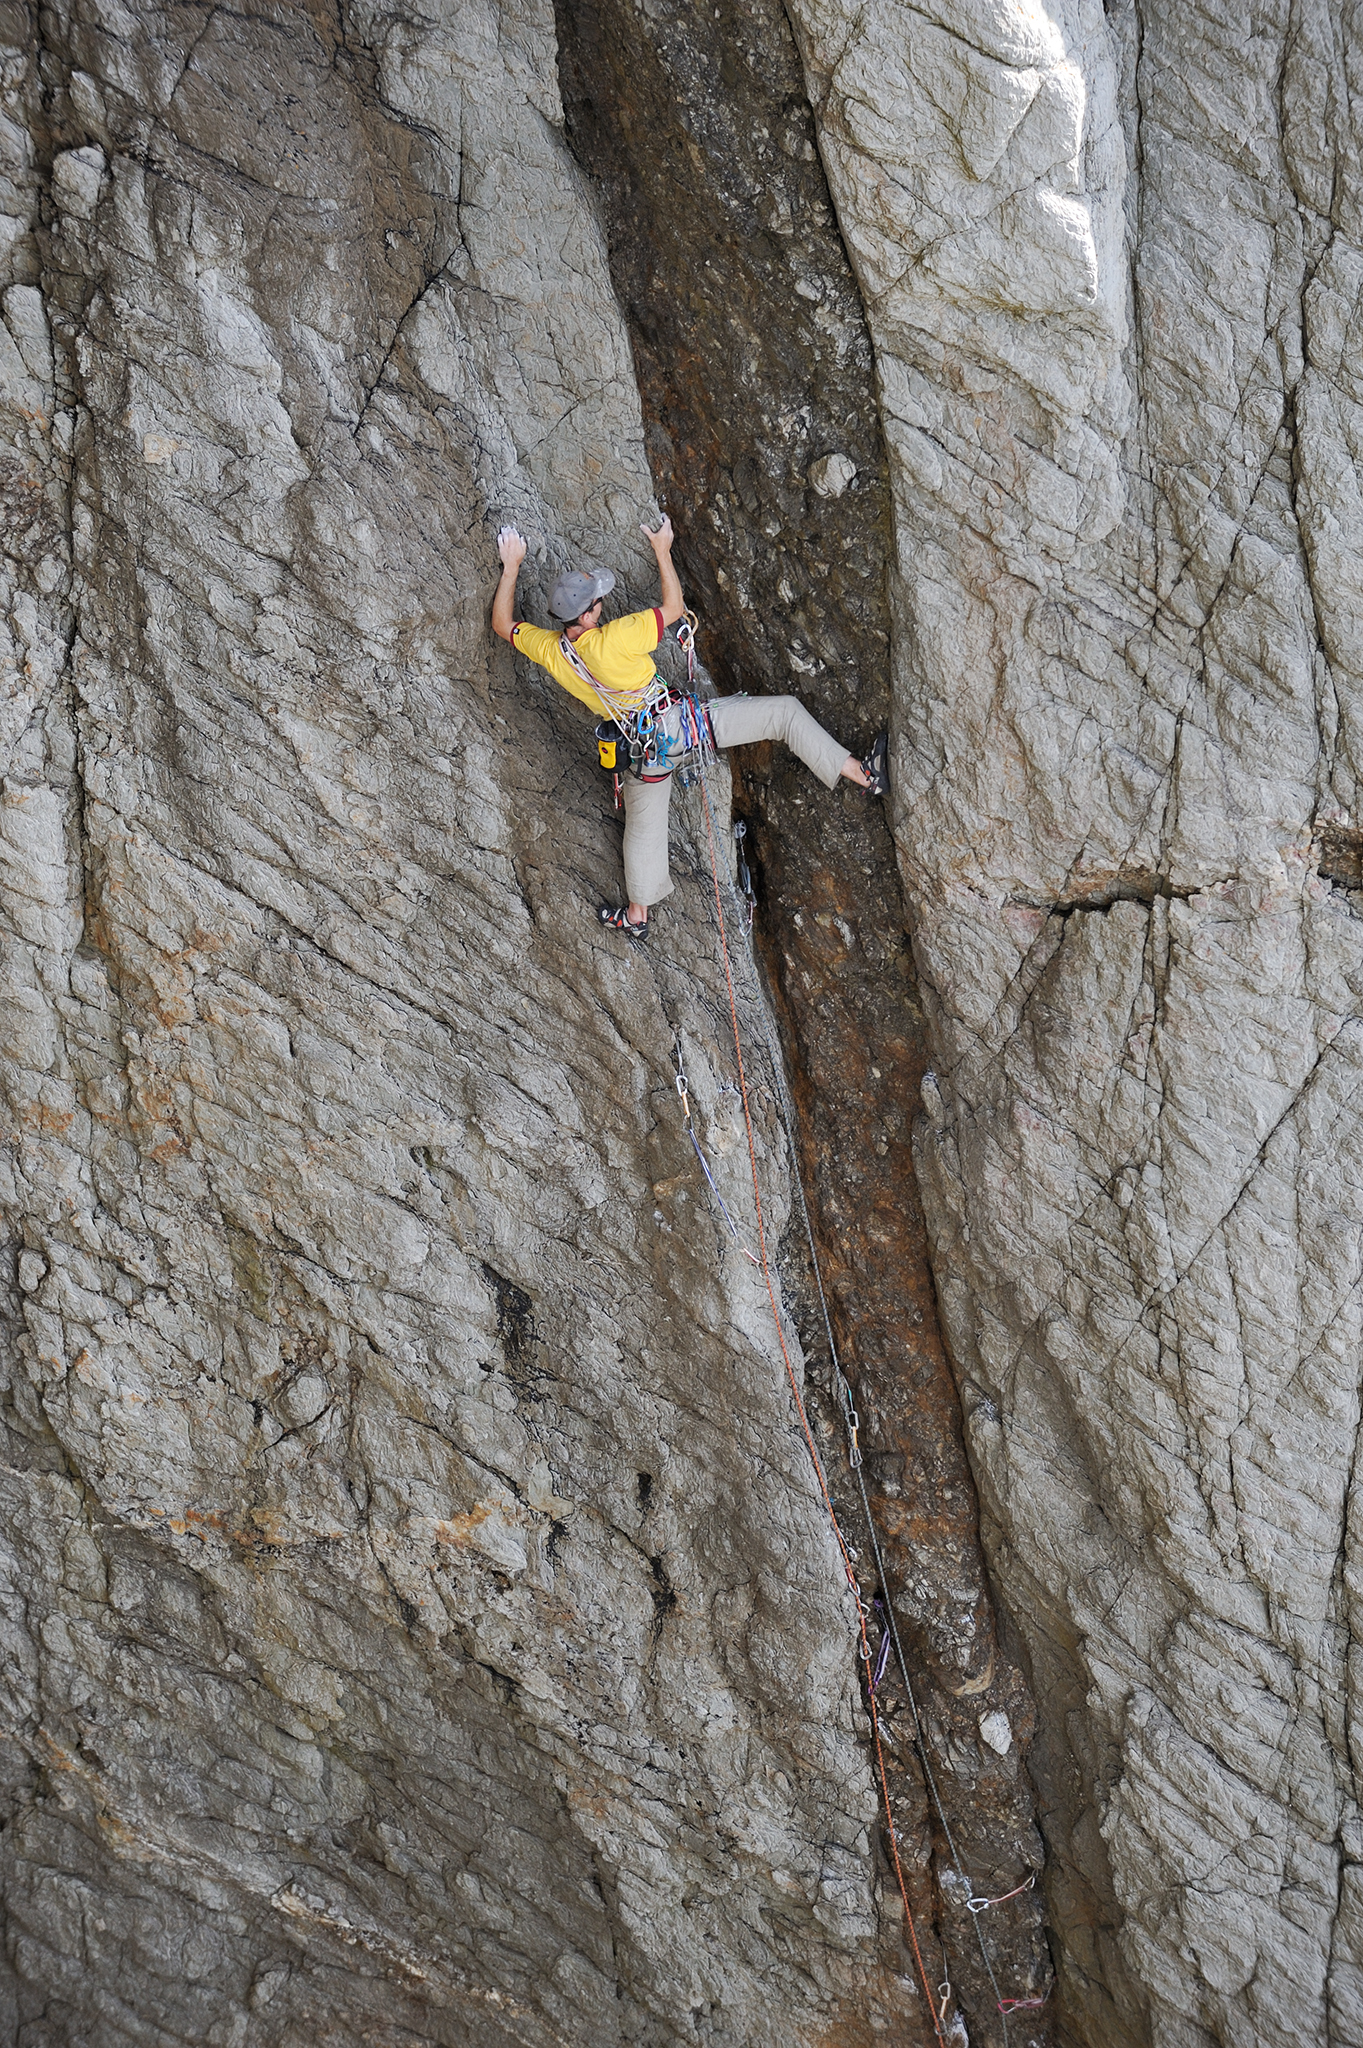 James McHaffie on Rubble E7 6a, 6a, 5a, in 2009, Wen Zawn, Gogarth